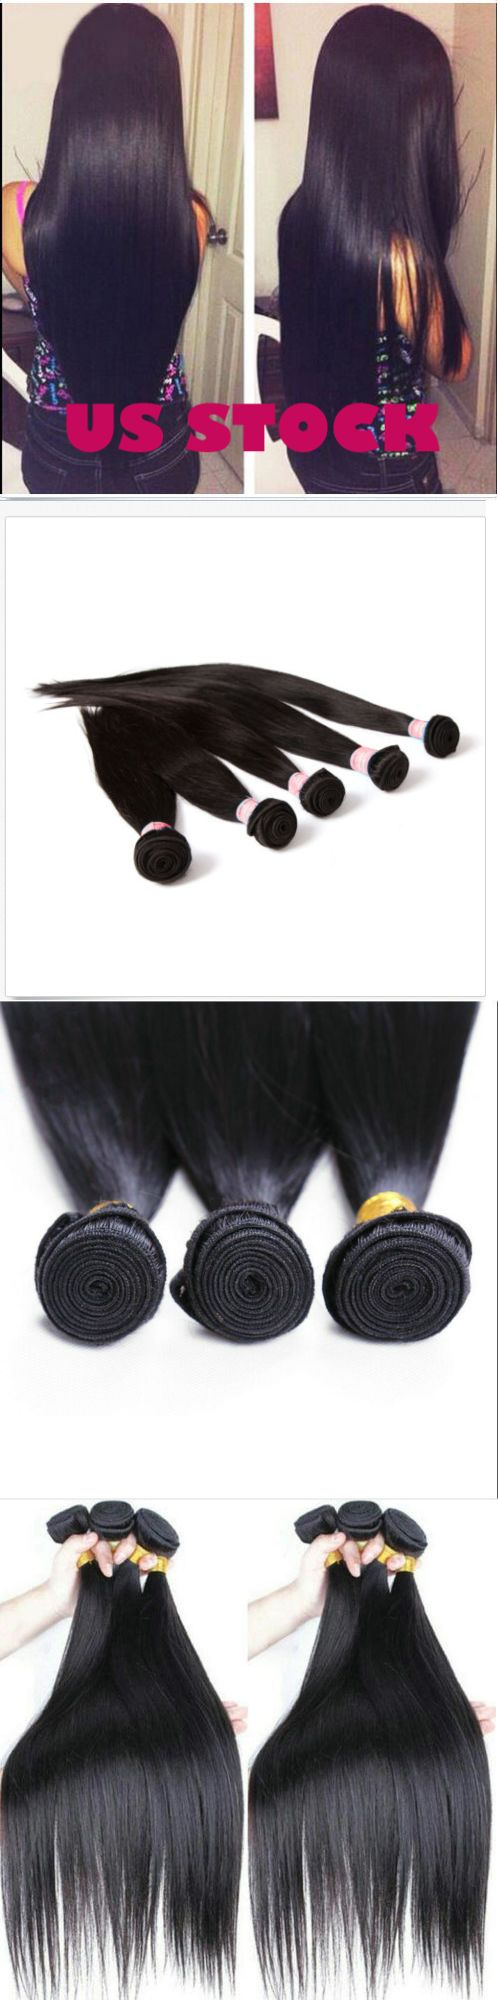 Hair Extensions: 3 Bundles 150G Peruvian Straight Hair All Virgin Remy Human Hair Extensions Us -> BUY IT NOW ONLY: $42.99 on eBay!